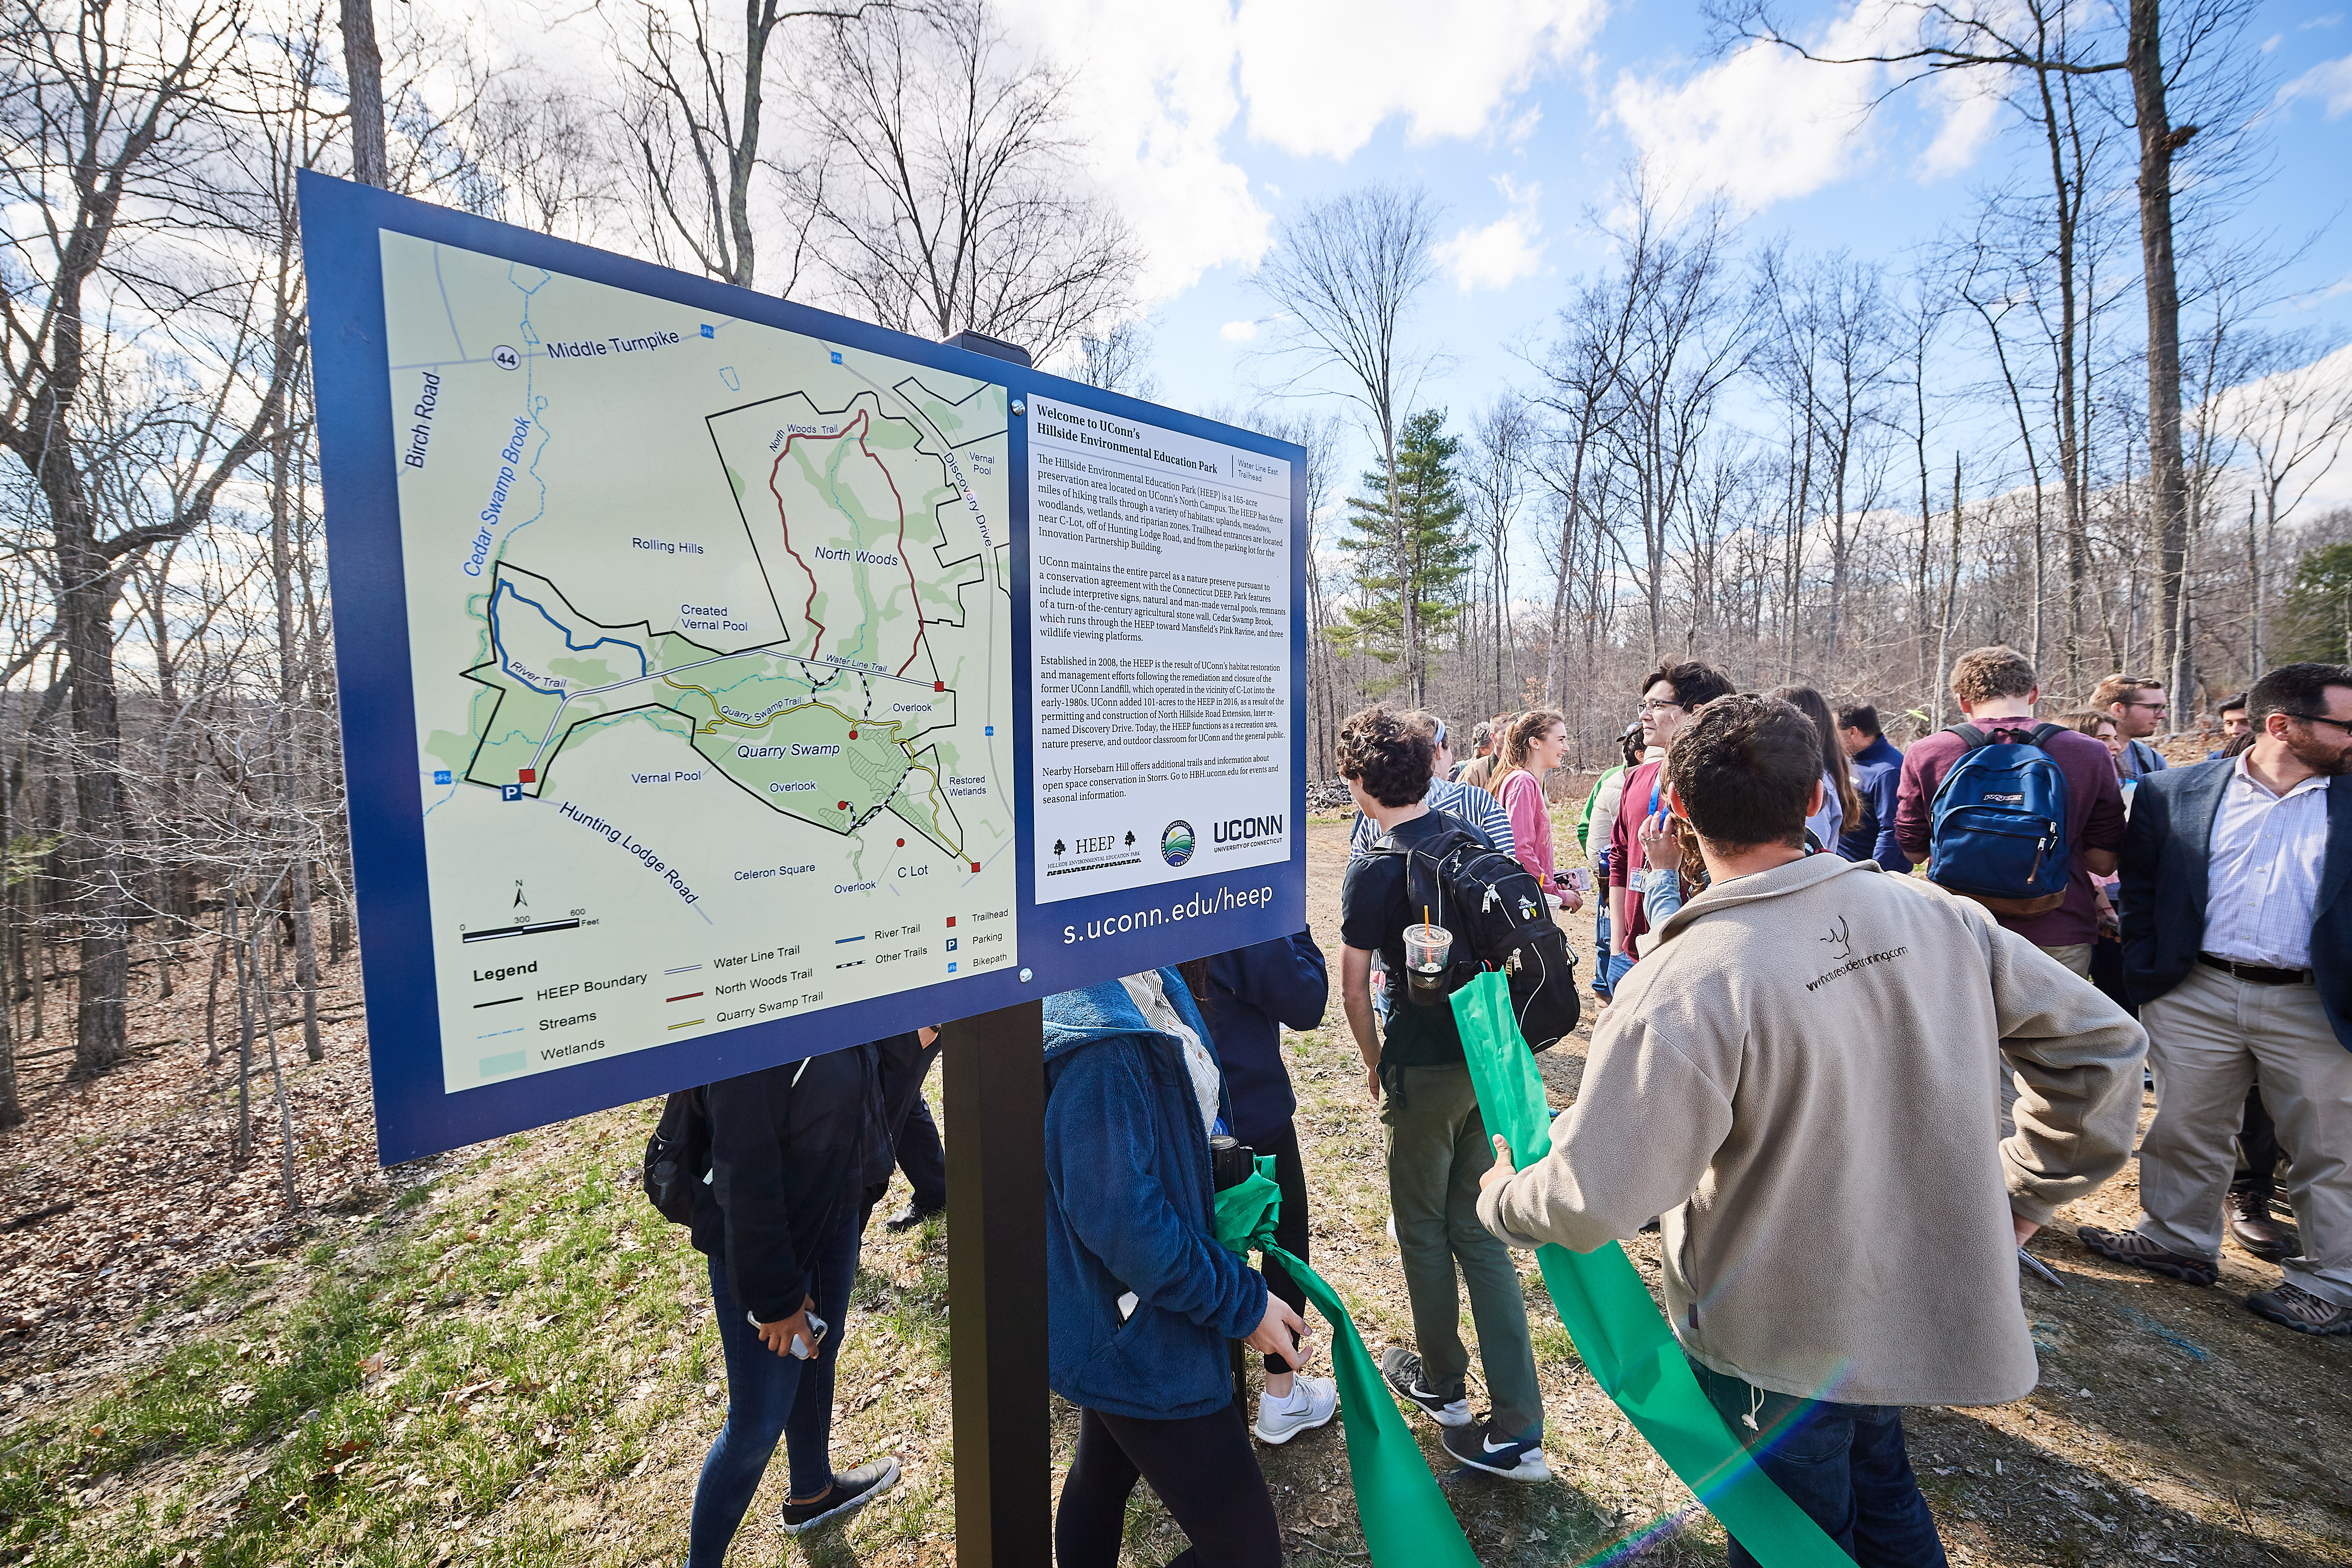 A group hike following the reopening of the Hillside Environmental Education Park trail near the Innovation Partnership Building on April 26, 2018. (Peter Morenus/UConn Photo)